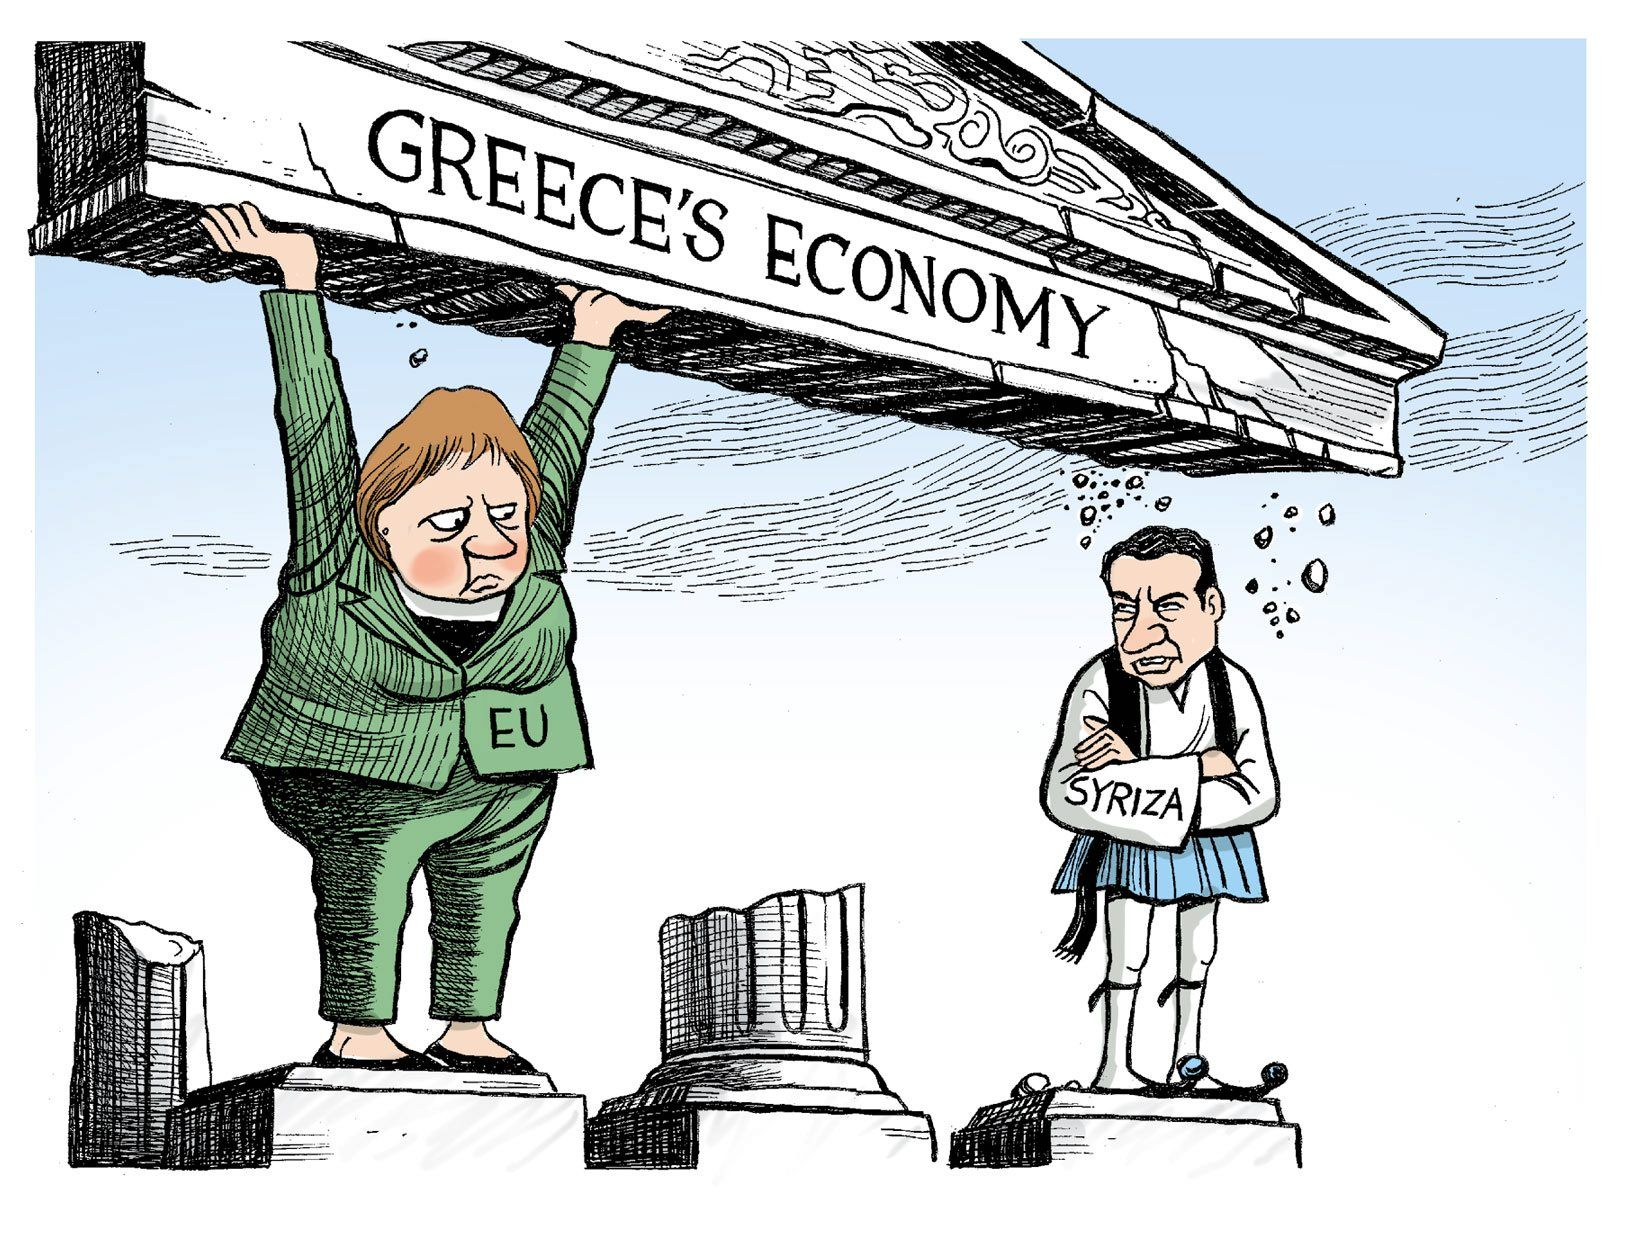 This is an example for a caricature showing the german president Angela Merkel. Germany was supposed to collaborate with Greece for the economy but prime minister has other plans to safe the country.